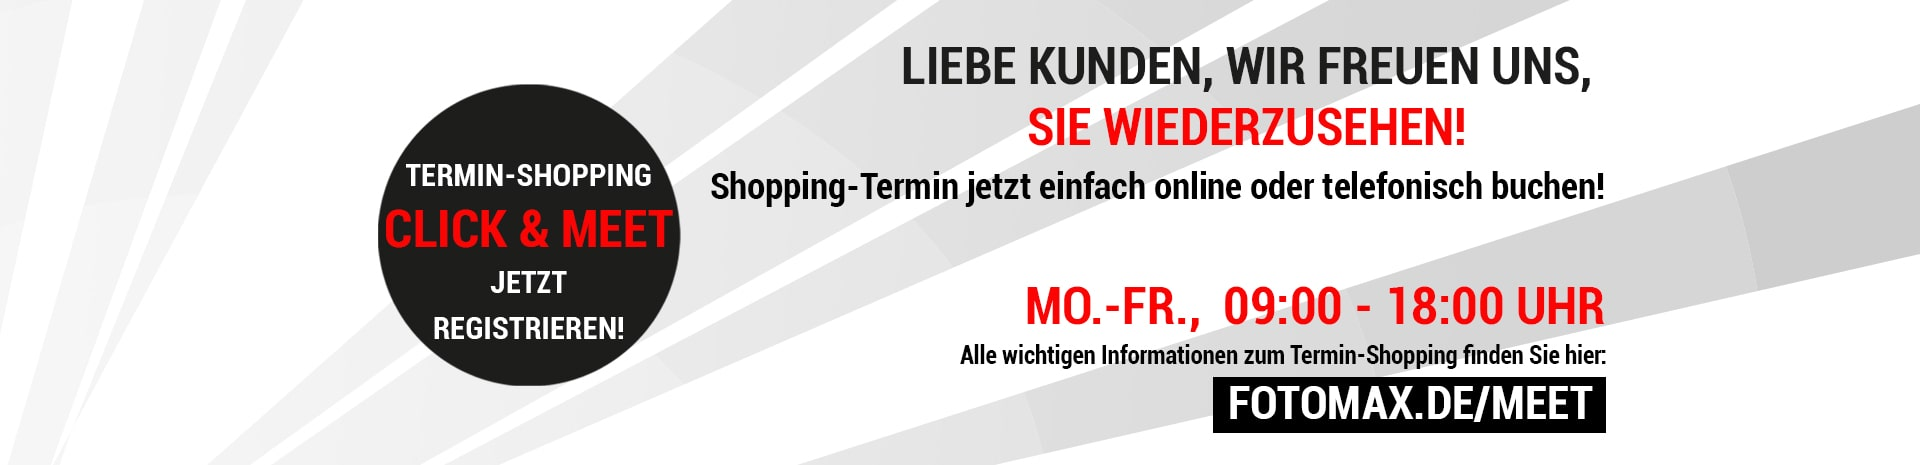 Click and Meet - Online Terminreservierung Fotomax Shopping